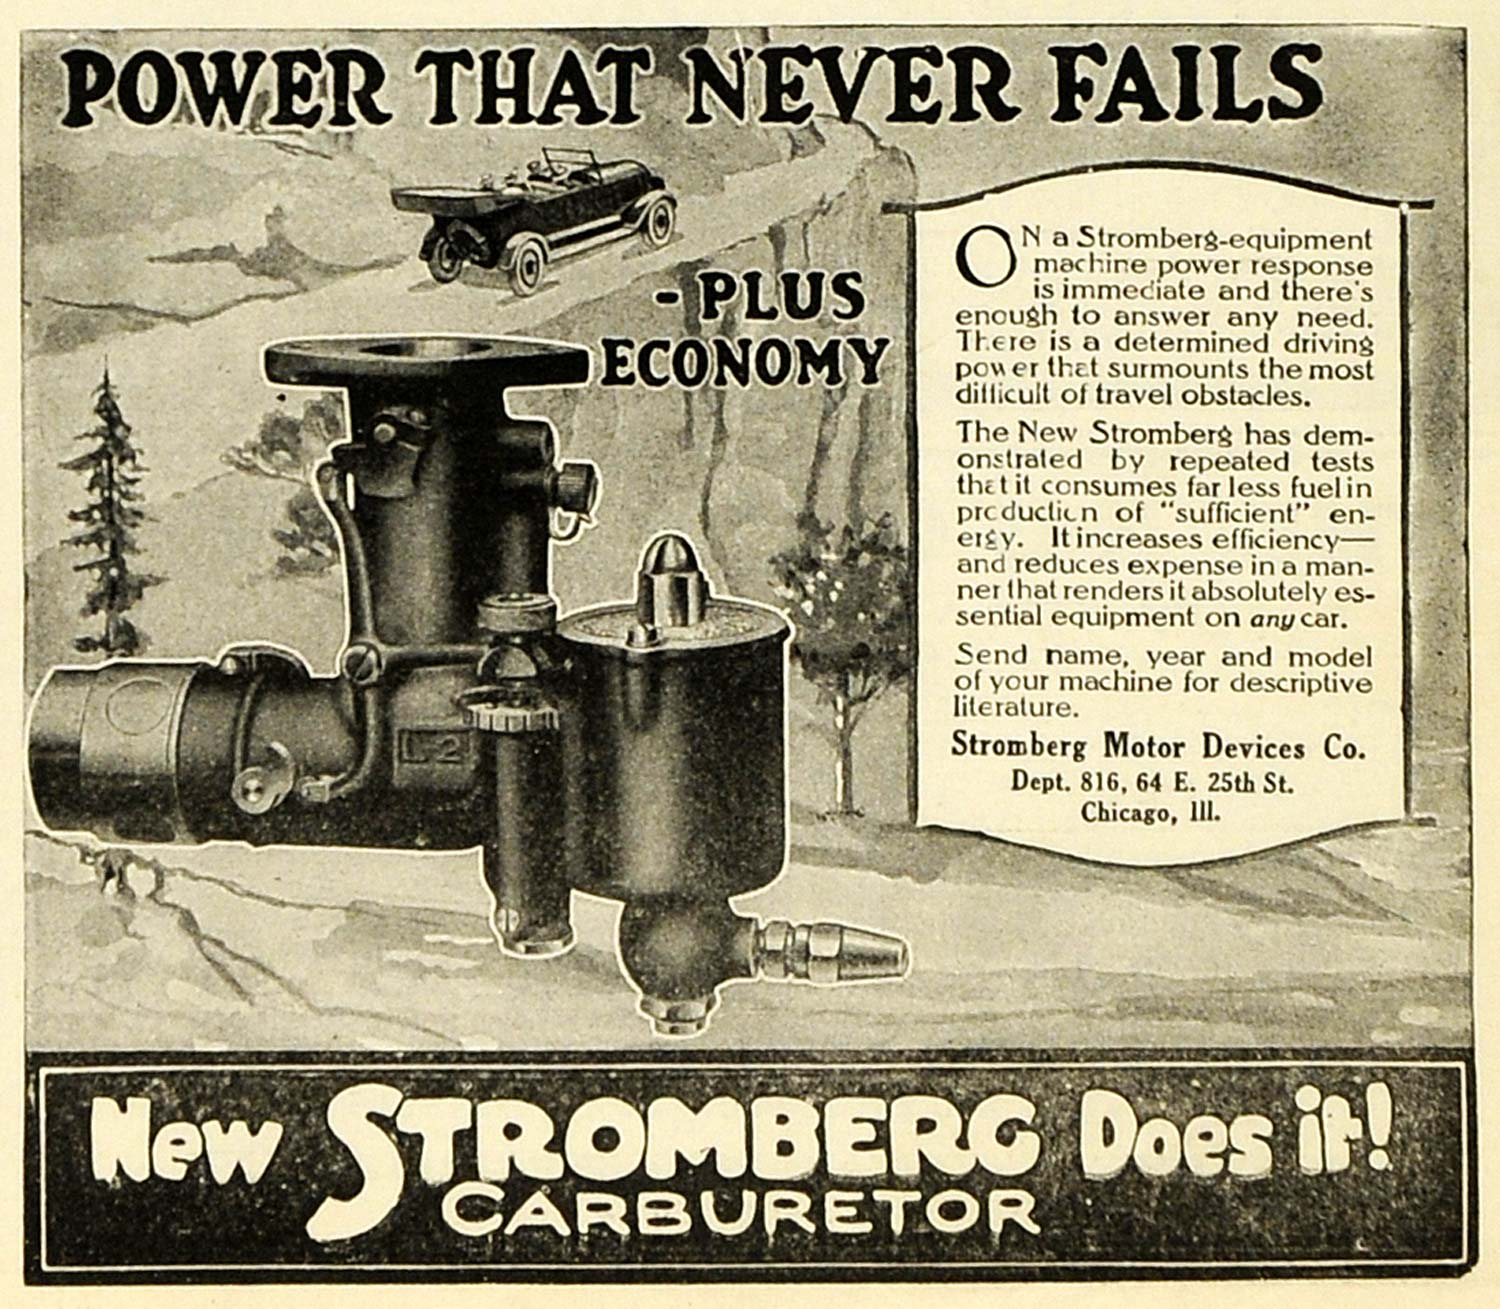 1919 Ad Stromberg Motor Devices Chicago lL Equipment Power Machine Fuel Car SCA3